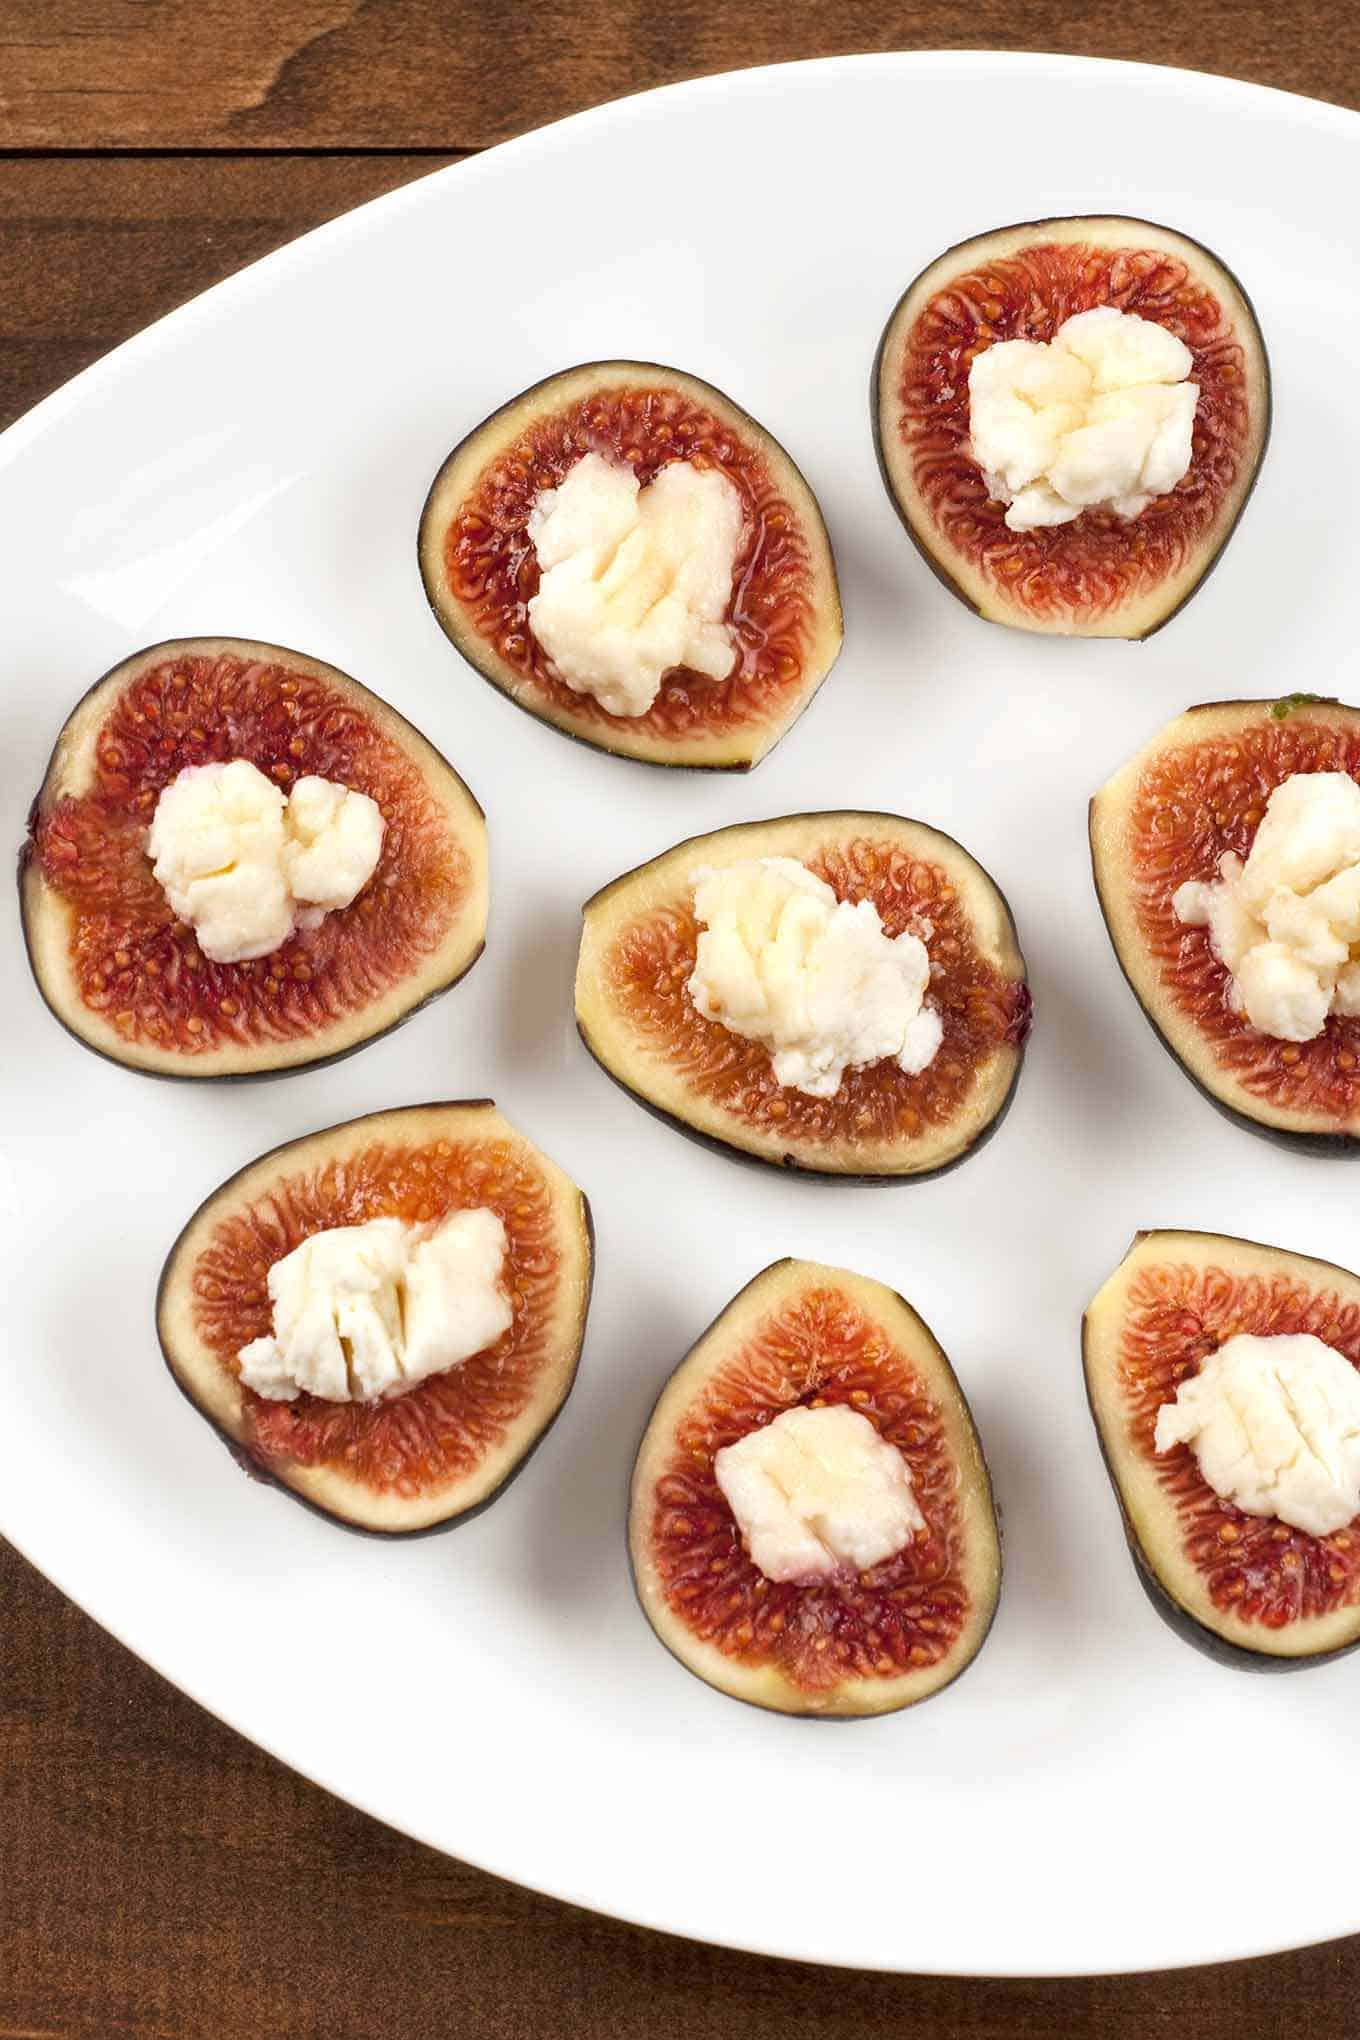 A platter of fresh fig halves topped with crumbled goat cheese and drizzled with honey.